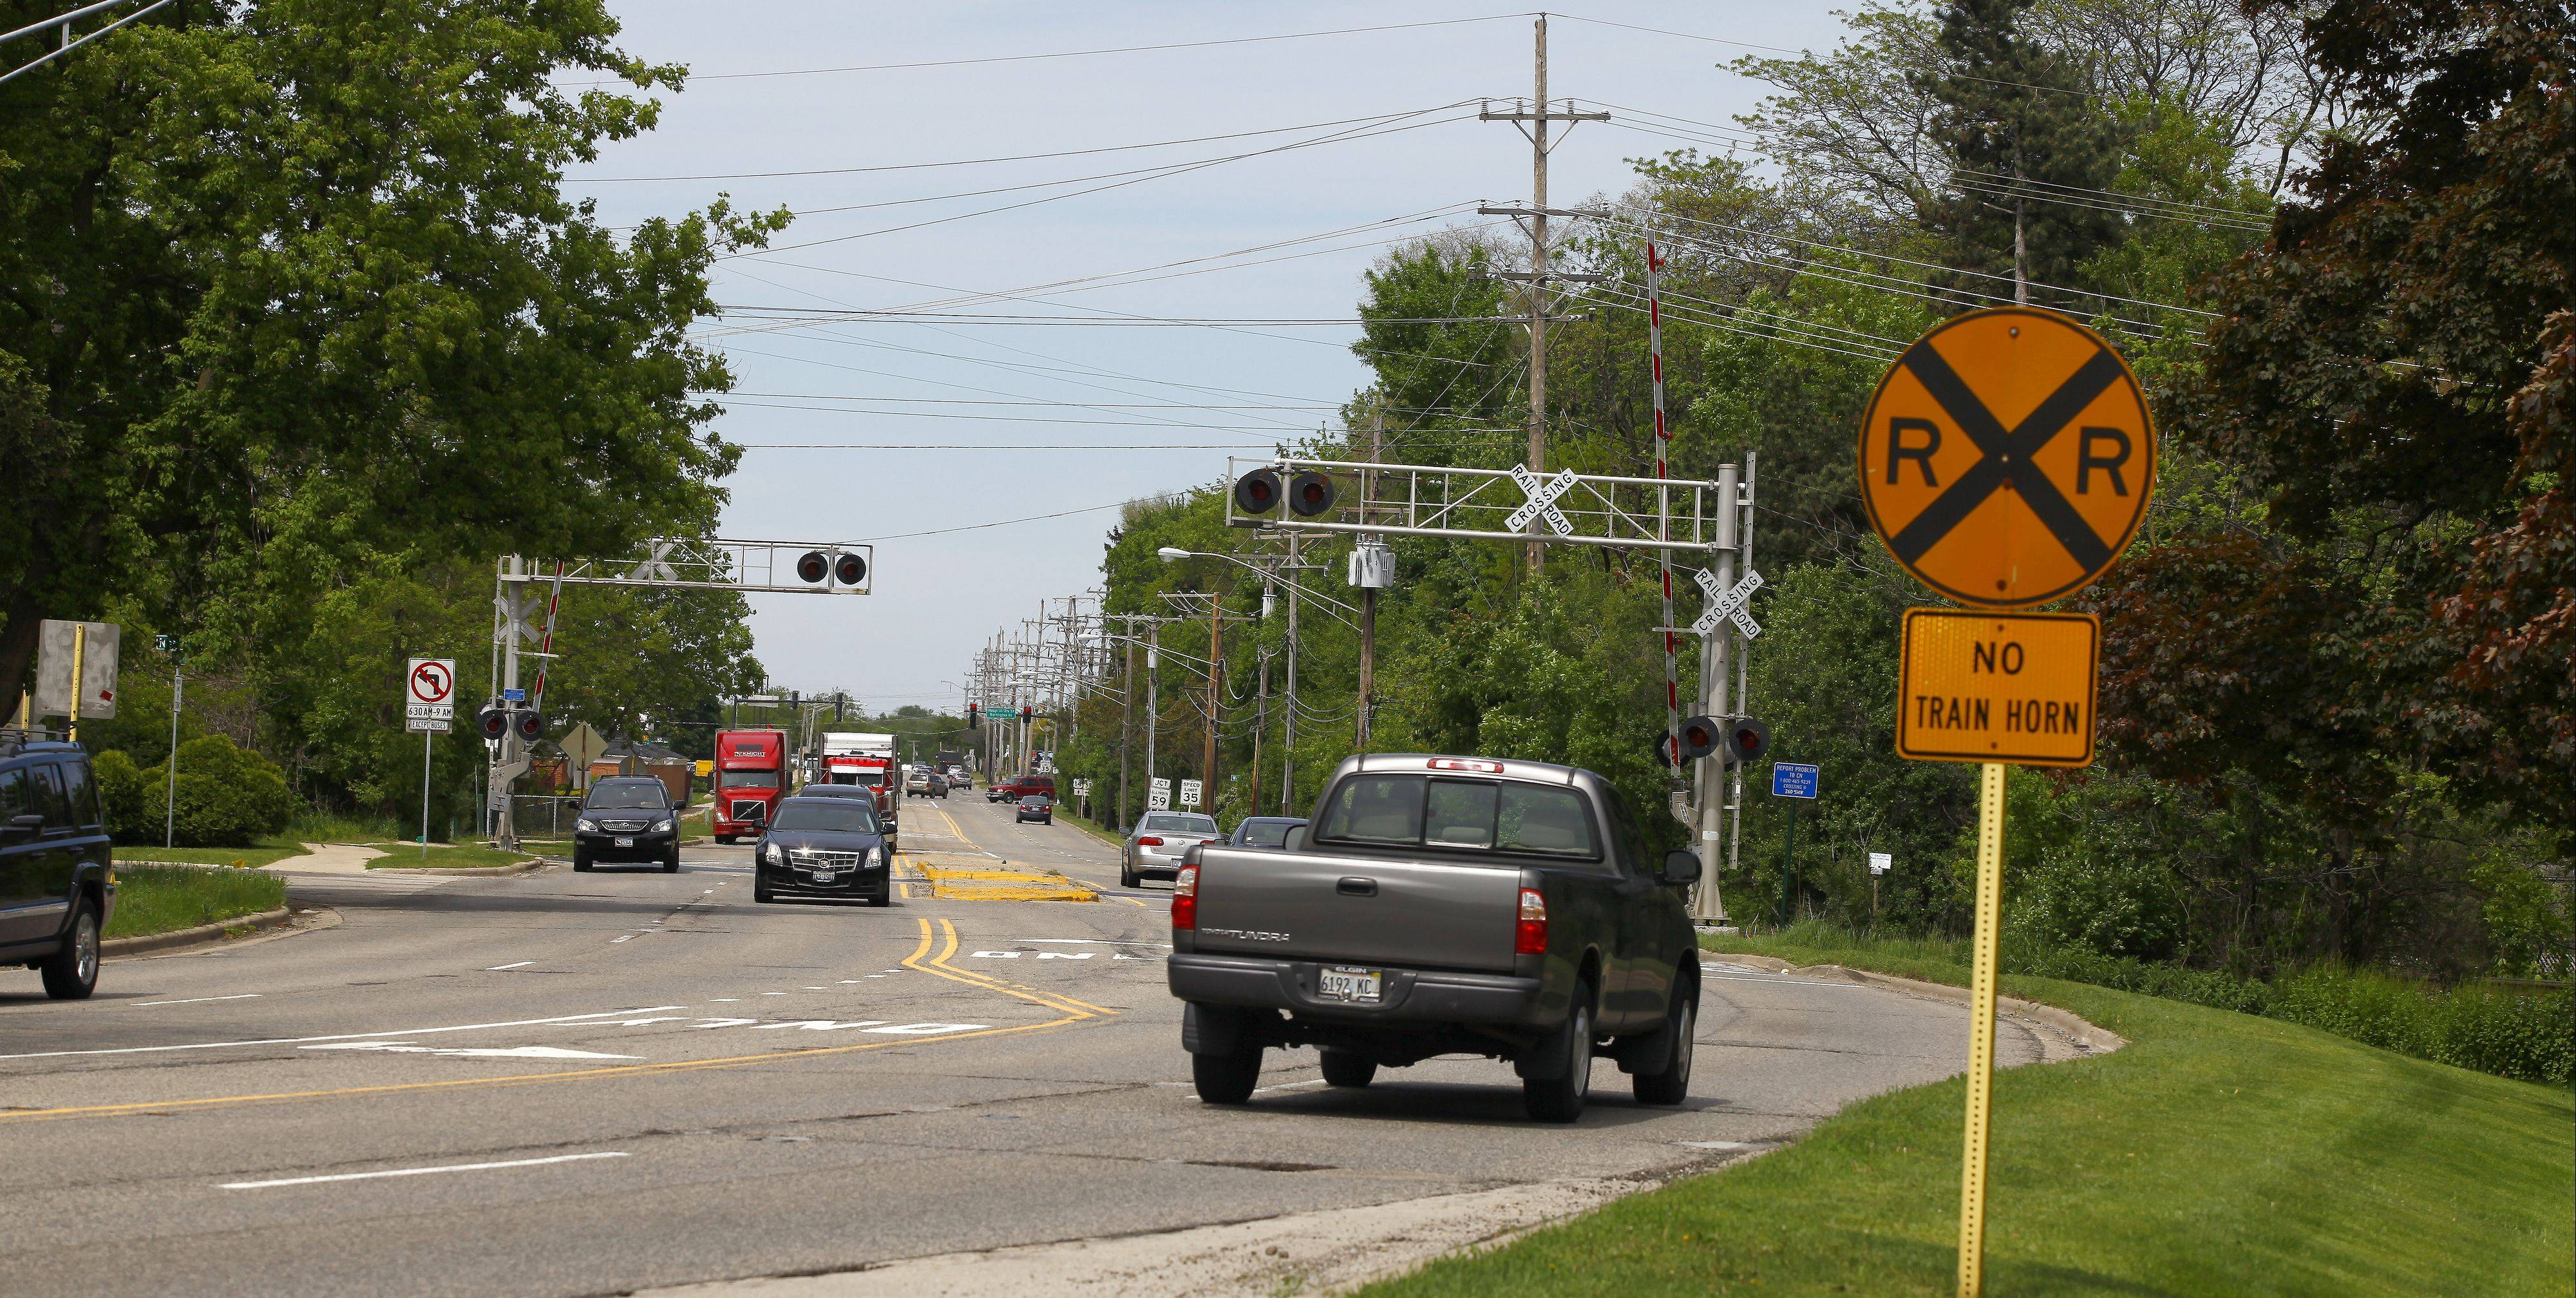 Barrington officials are weighing public input on whether to seek an overpass or an underpass on Route 14 at the Canadian National railroad crossing near Lake Zurich Road.